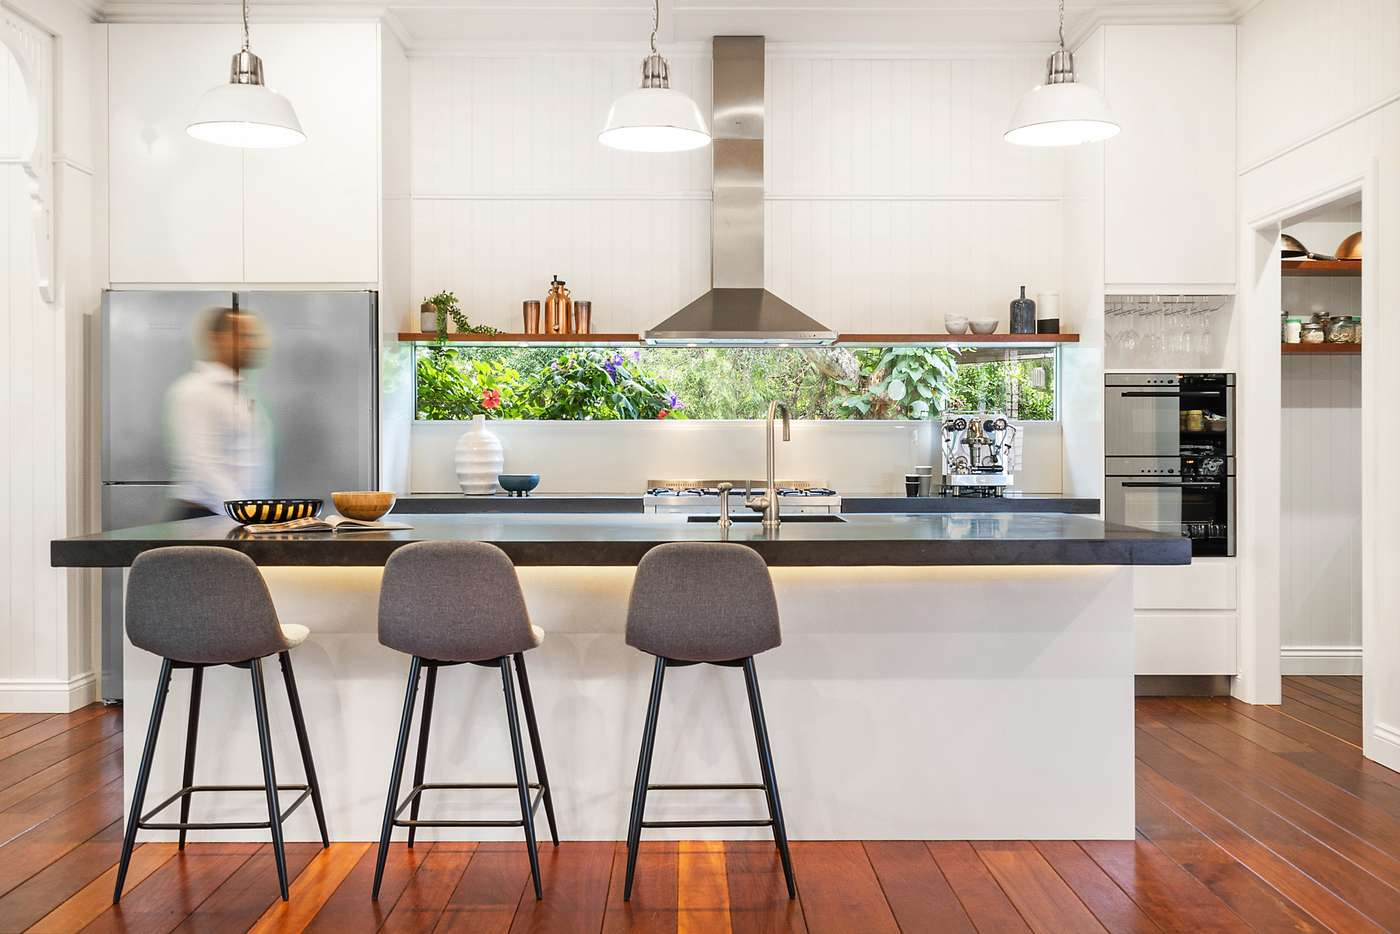 Main view of Homely house listing, 42 Hunter Street, Greenslopes QLD 4120